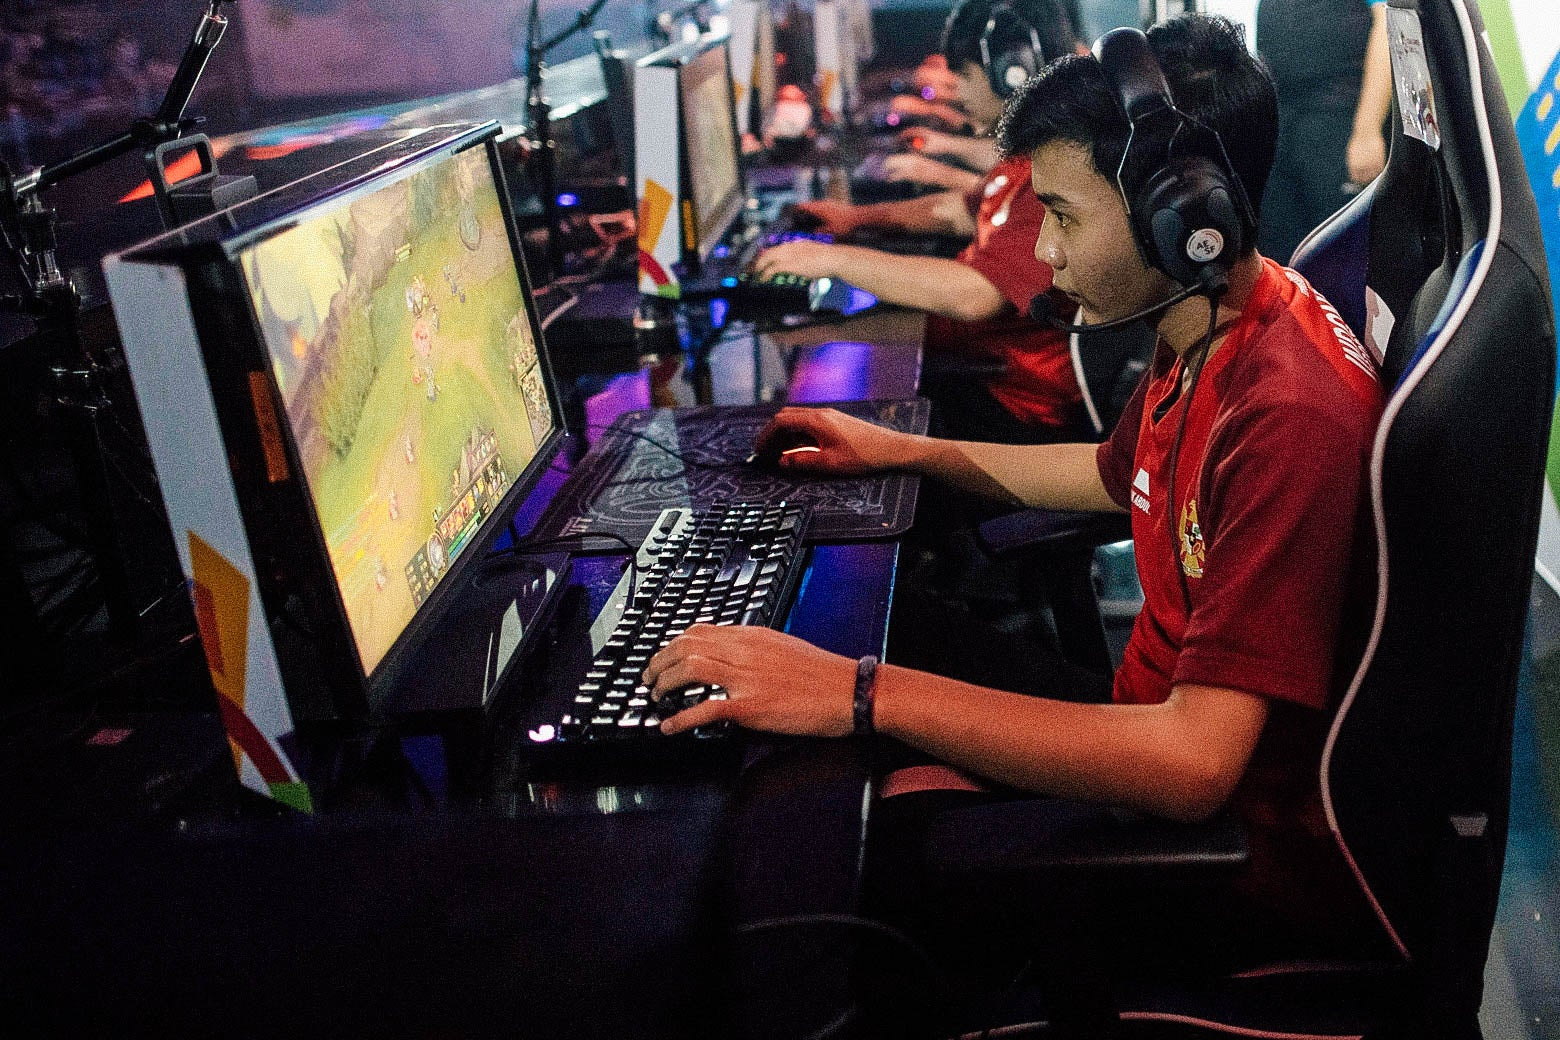 The Indonesian team competes in the eSports Round 6 Match 1 as an exhibition sport at the 2018 Asian Games in Jakarta on Tuesday.